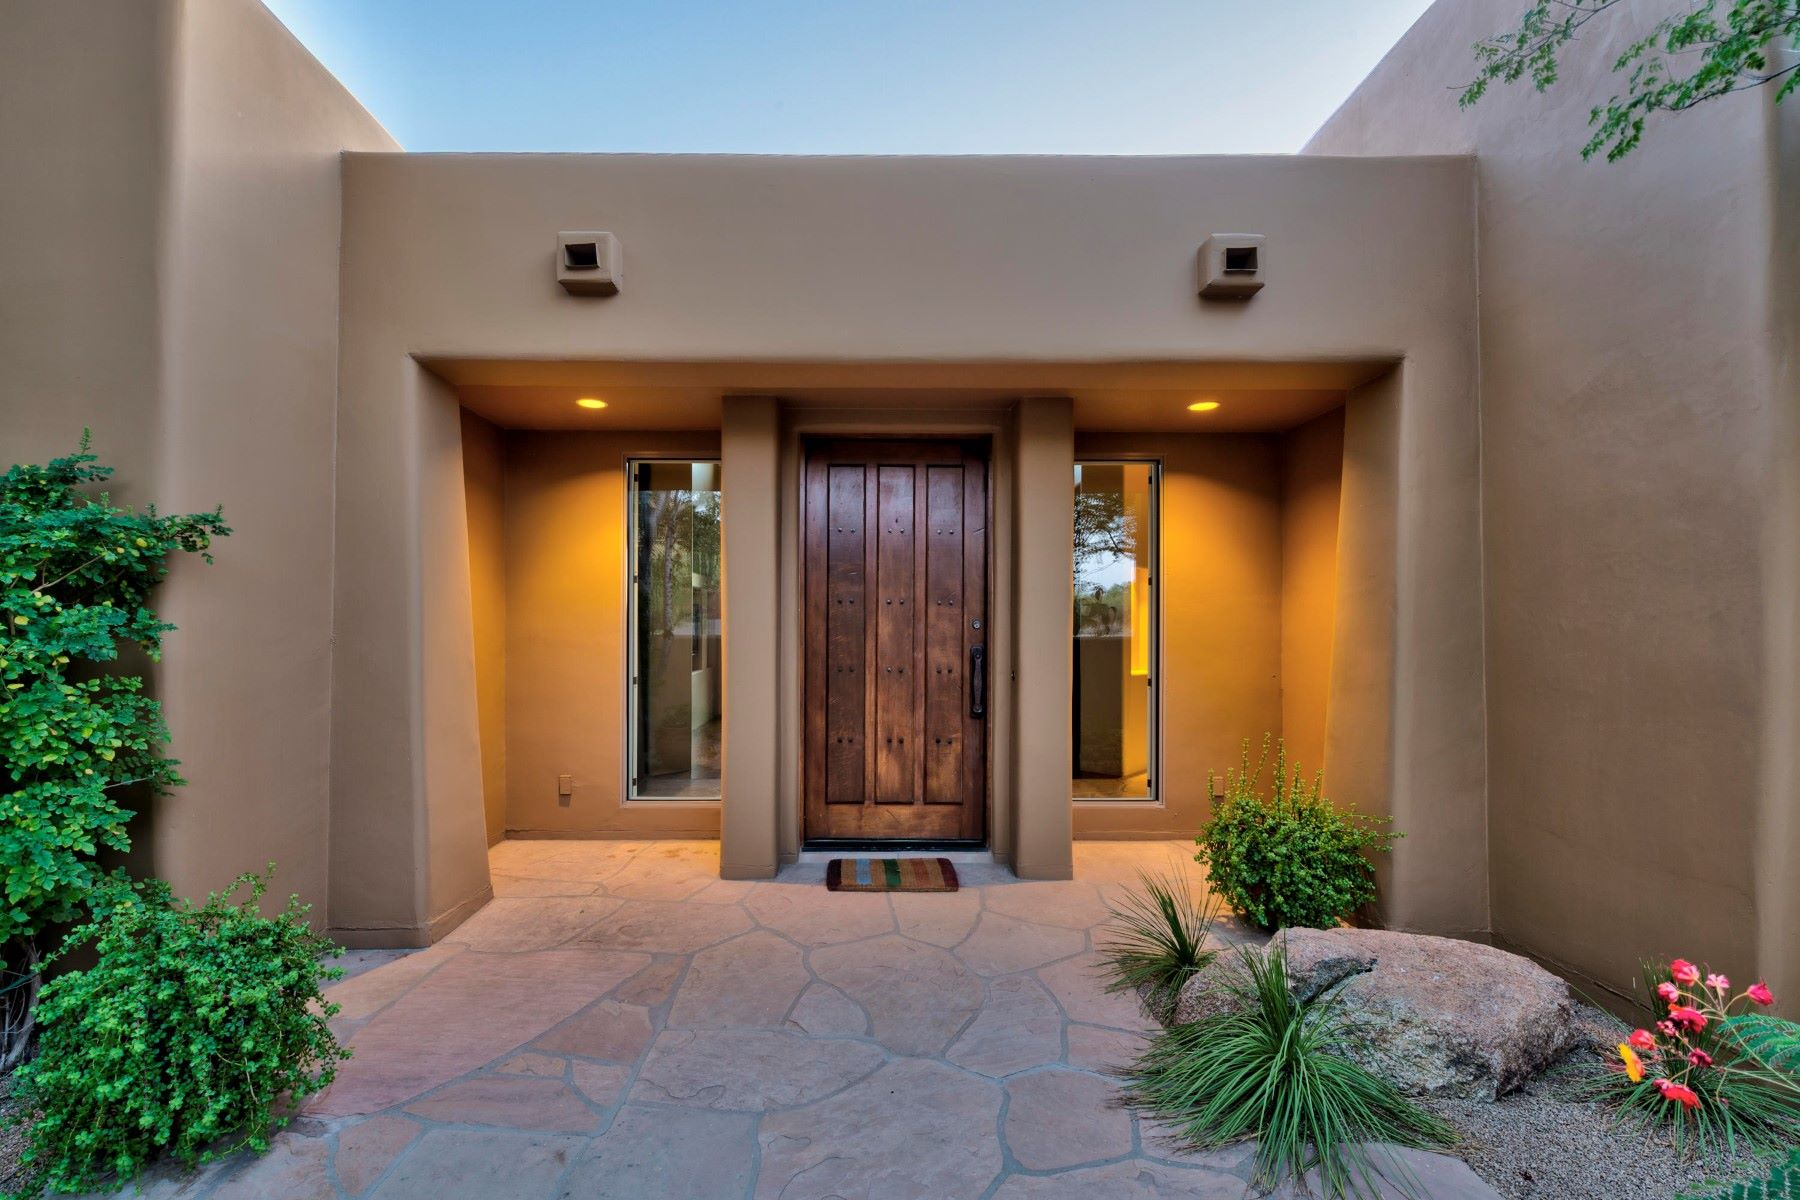 獨棟家庭住宅 為 出售 在 Gorgeous Desert Highlands home 10040 E Happy Valley Rd #280, Scottsdale, 亞利桑那州, 85255 美國